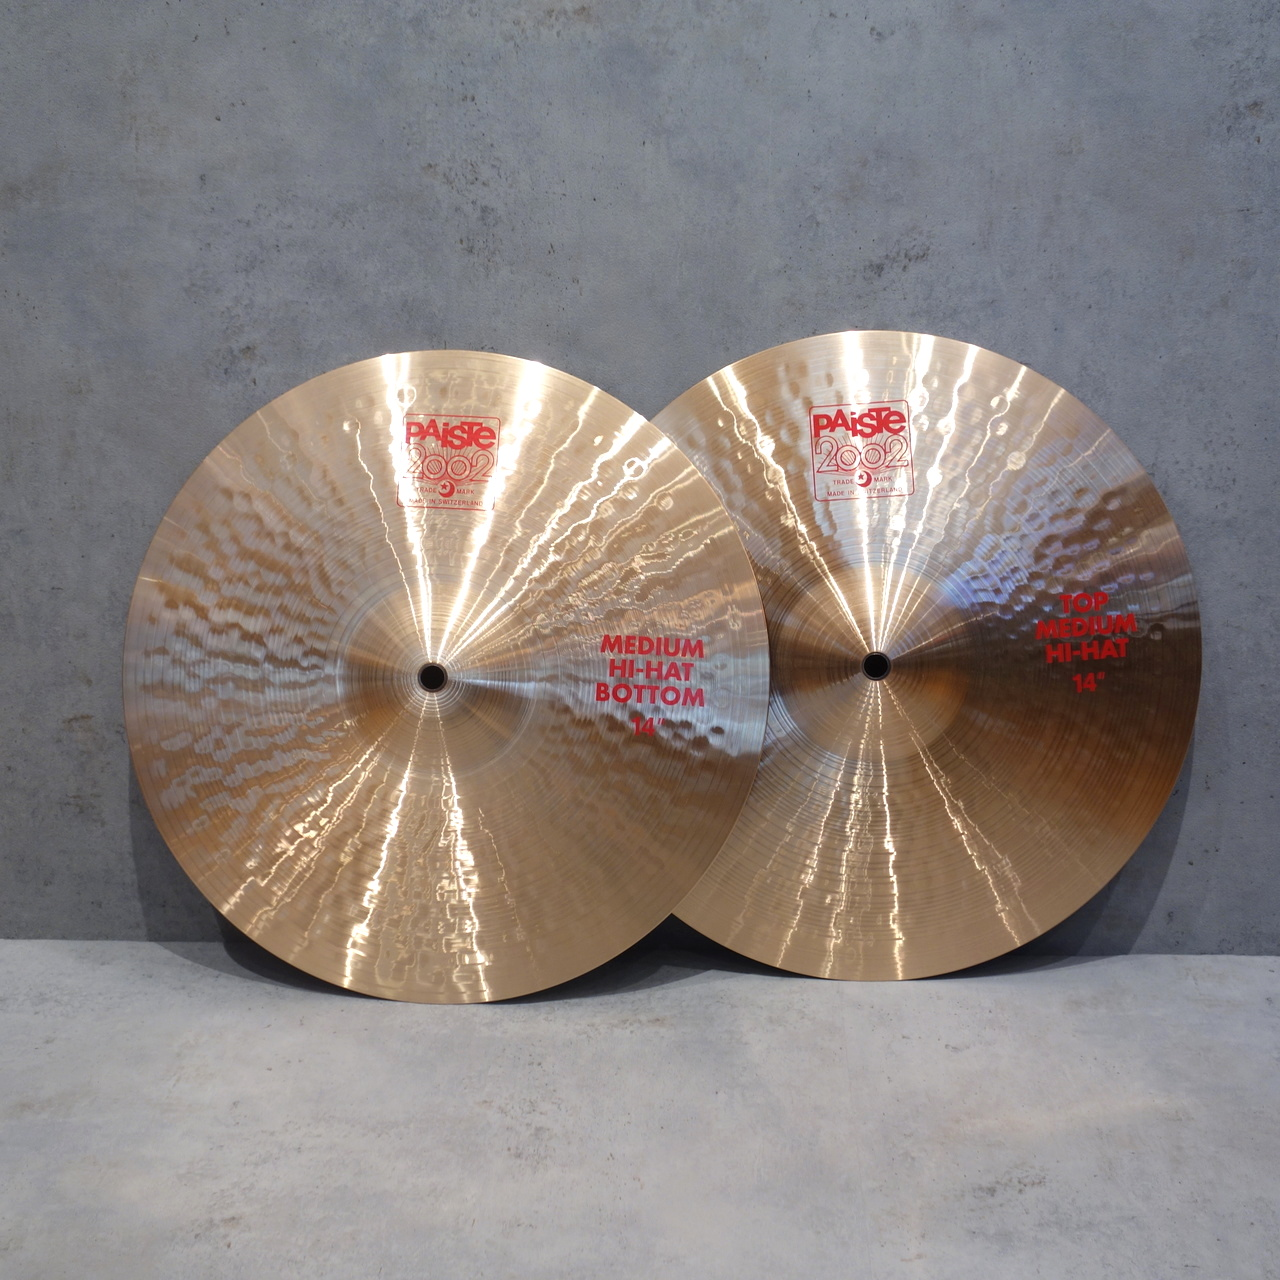 PAiSTe <br> 2002 Medium Hi-Hat 14″